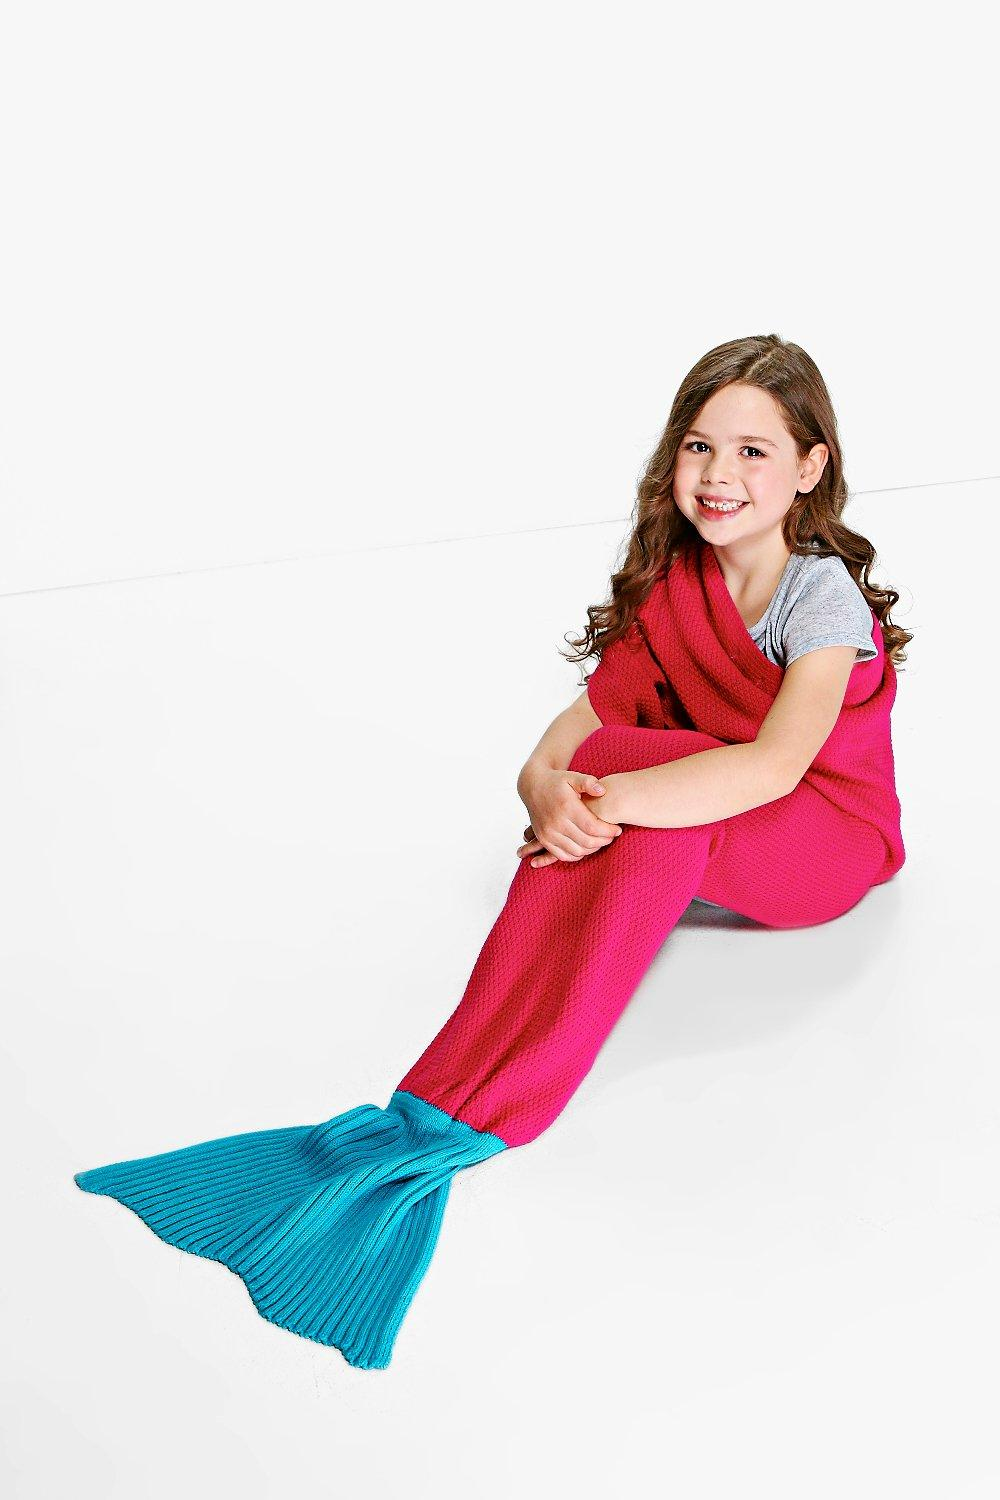 Contrast Tail Mermaid Blanket - pink - Girls Contr